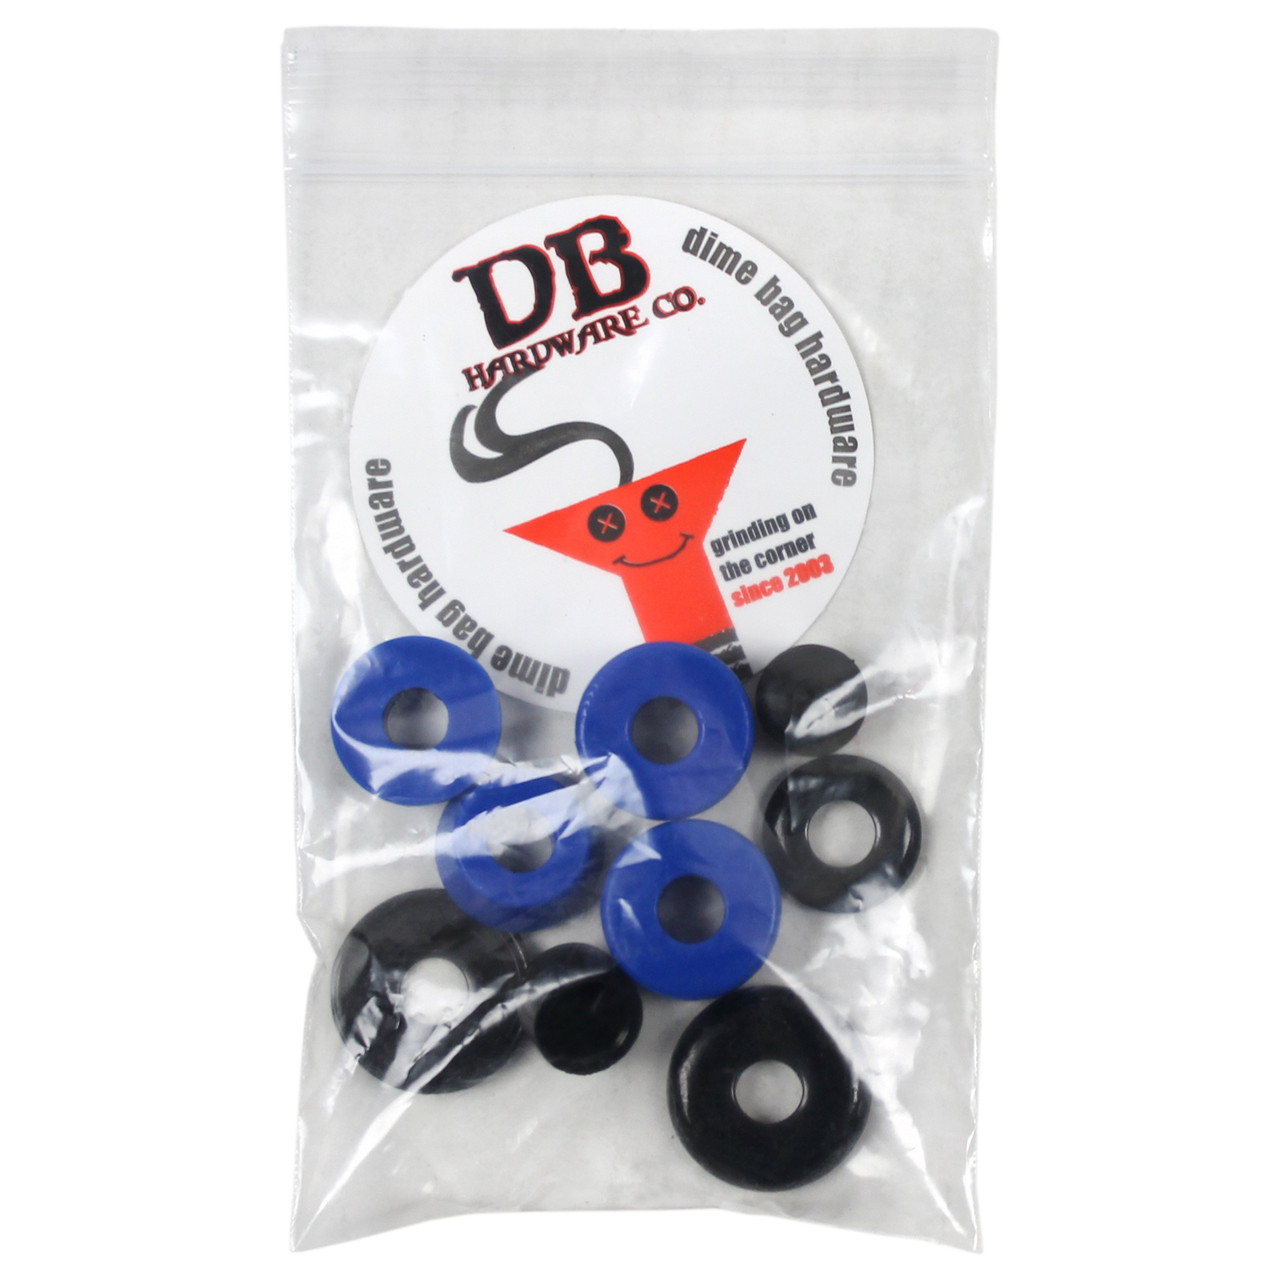 Dimebag Hardware Bushing Kit Blue 88A - Keystone Skate Supply